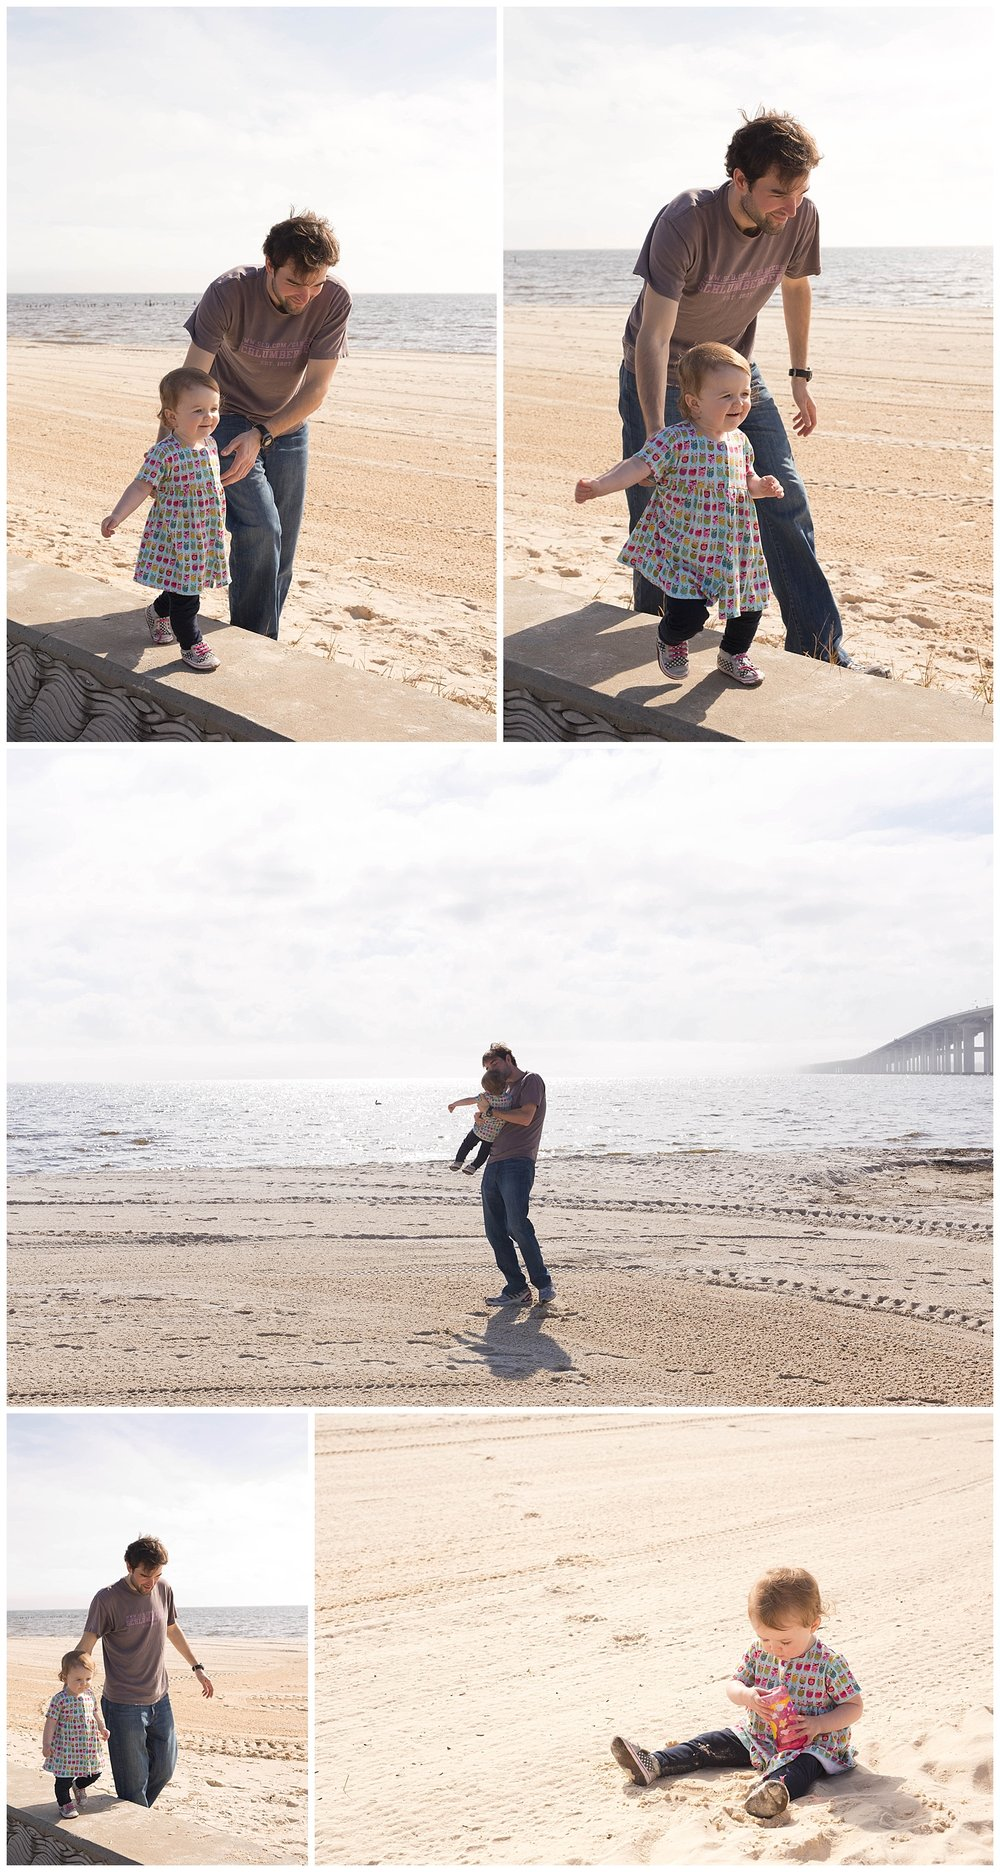 toddler girl walking and playing on beach with uncle